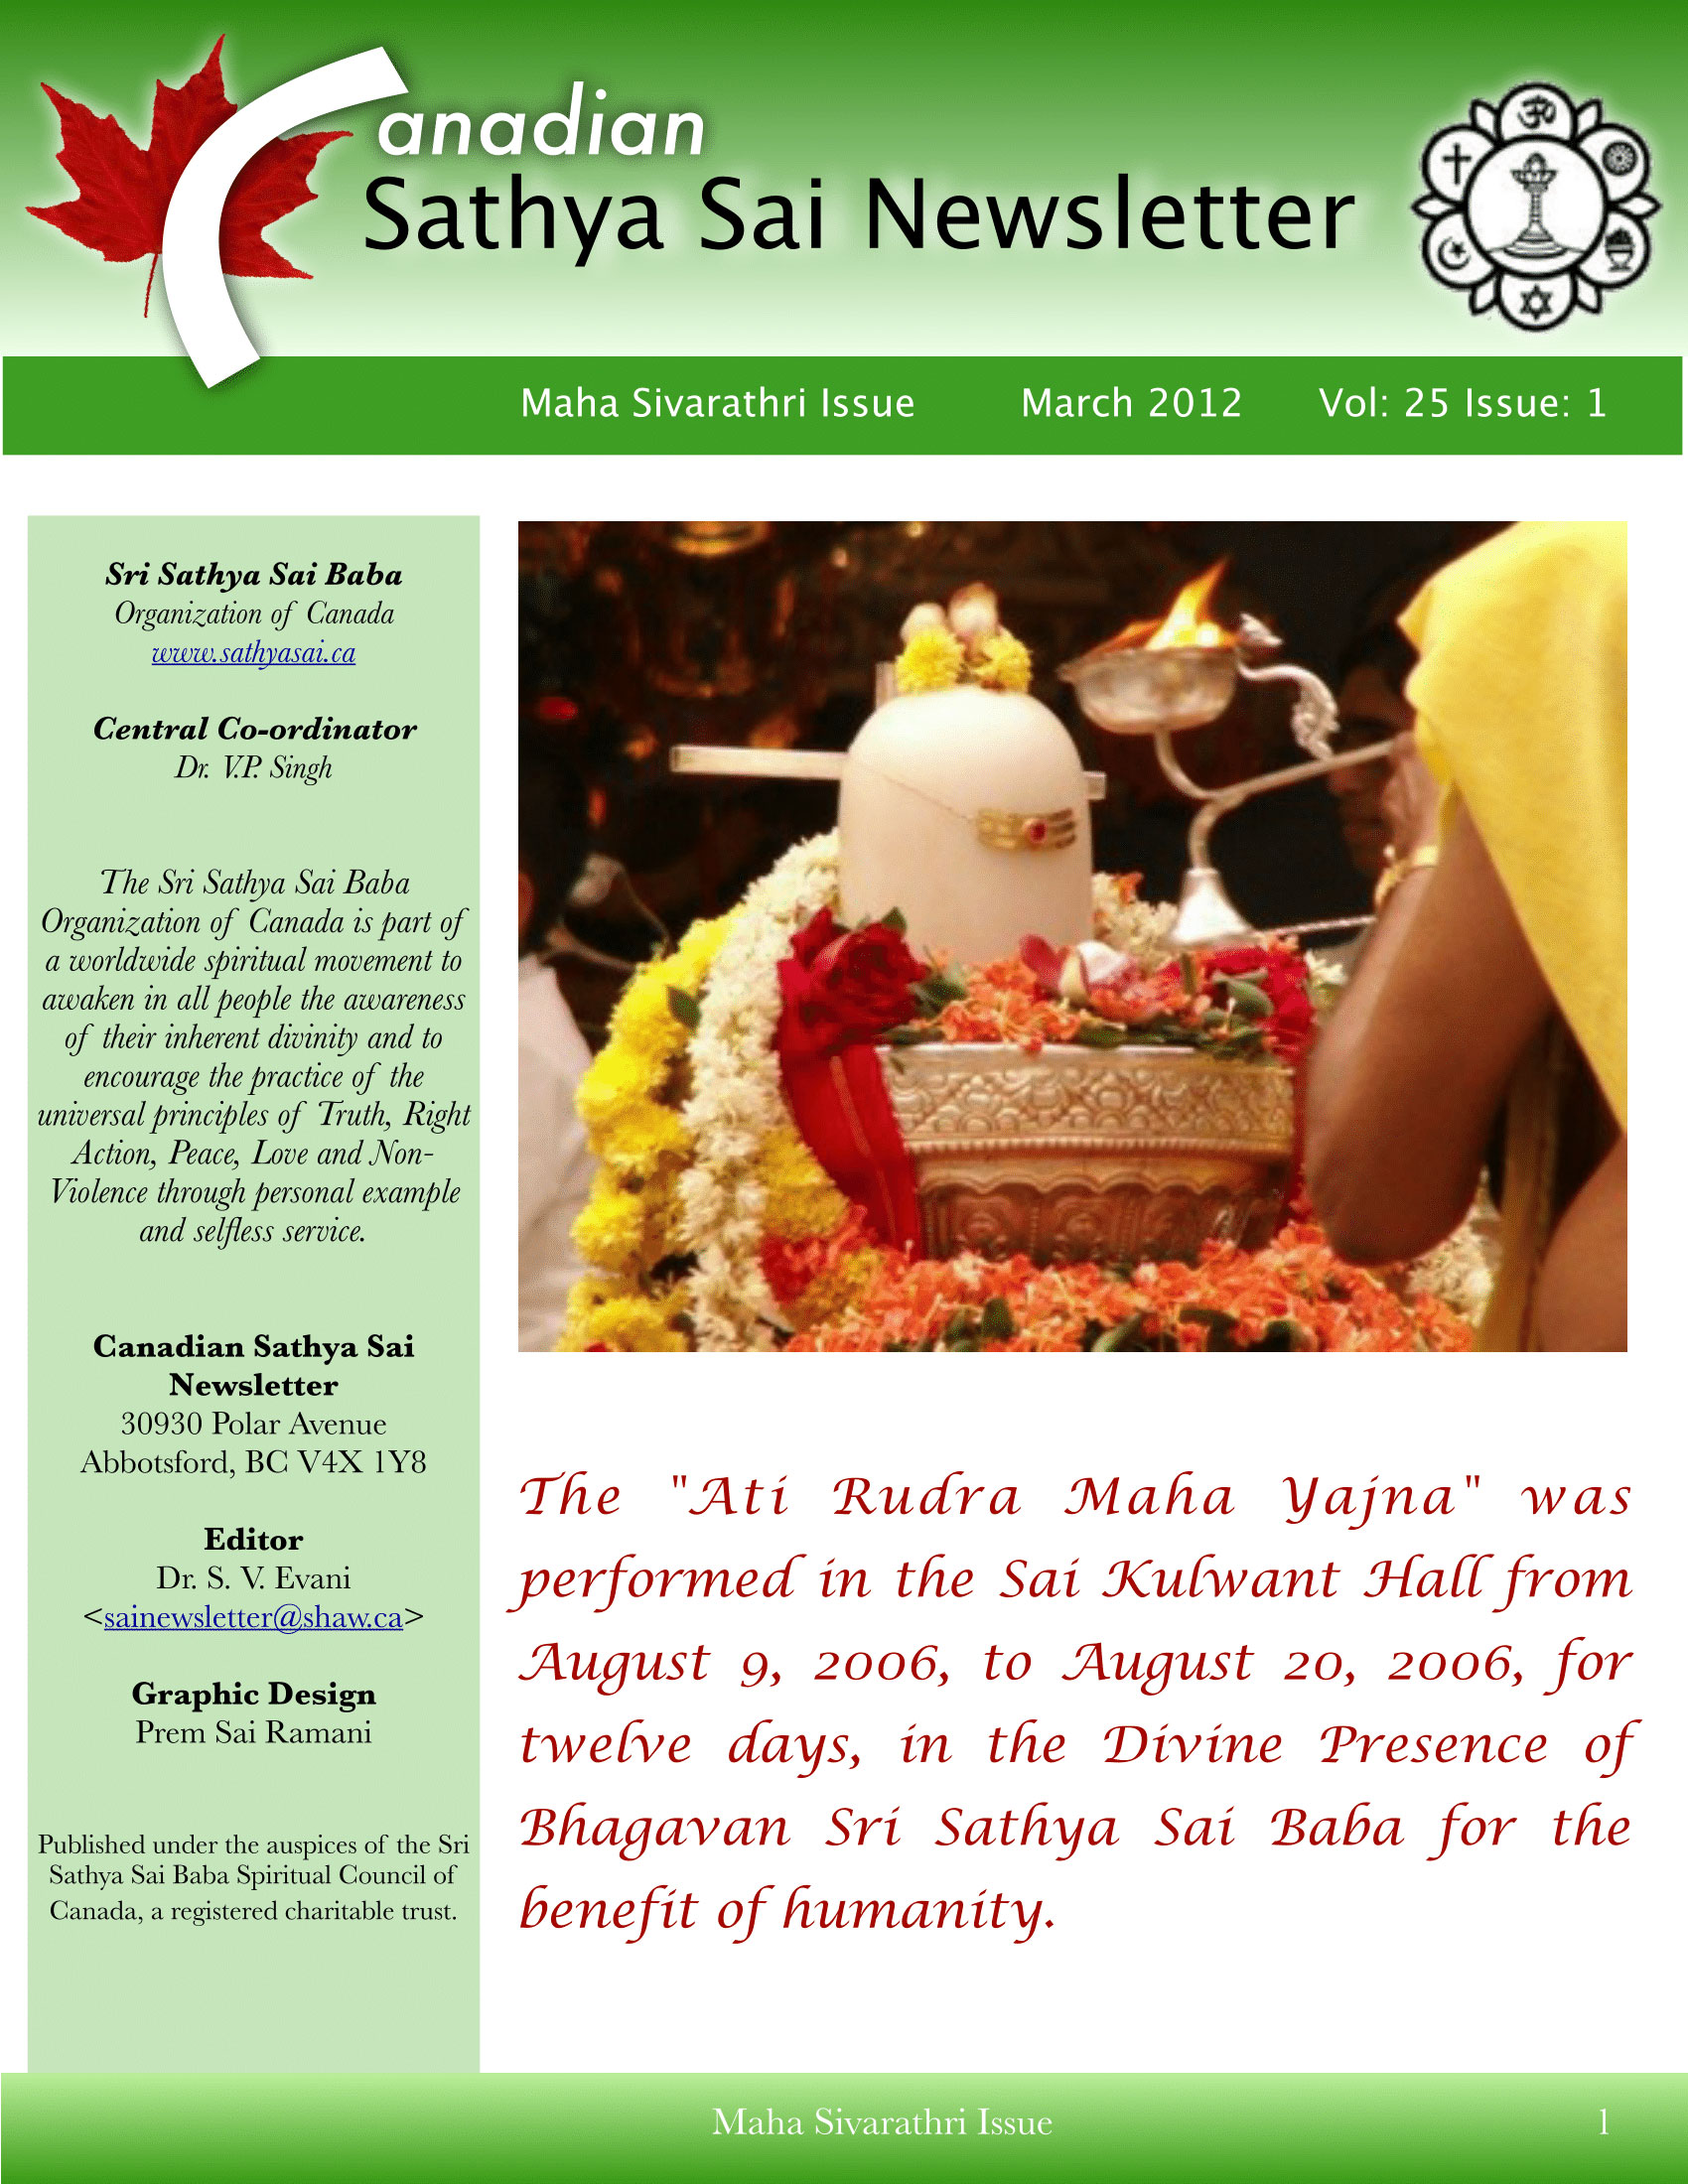 The Canadian Sathya Sai Magazine - Spring 2012